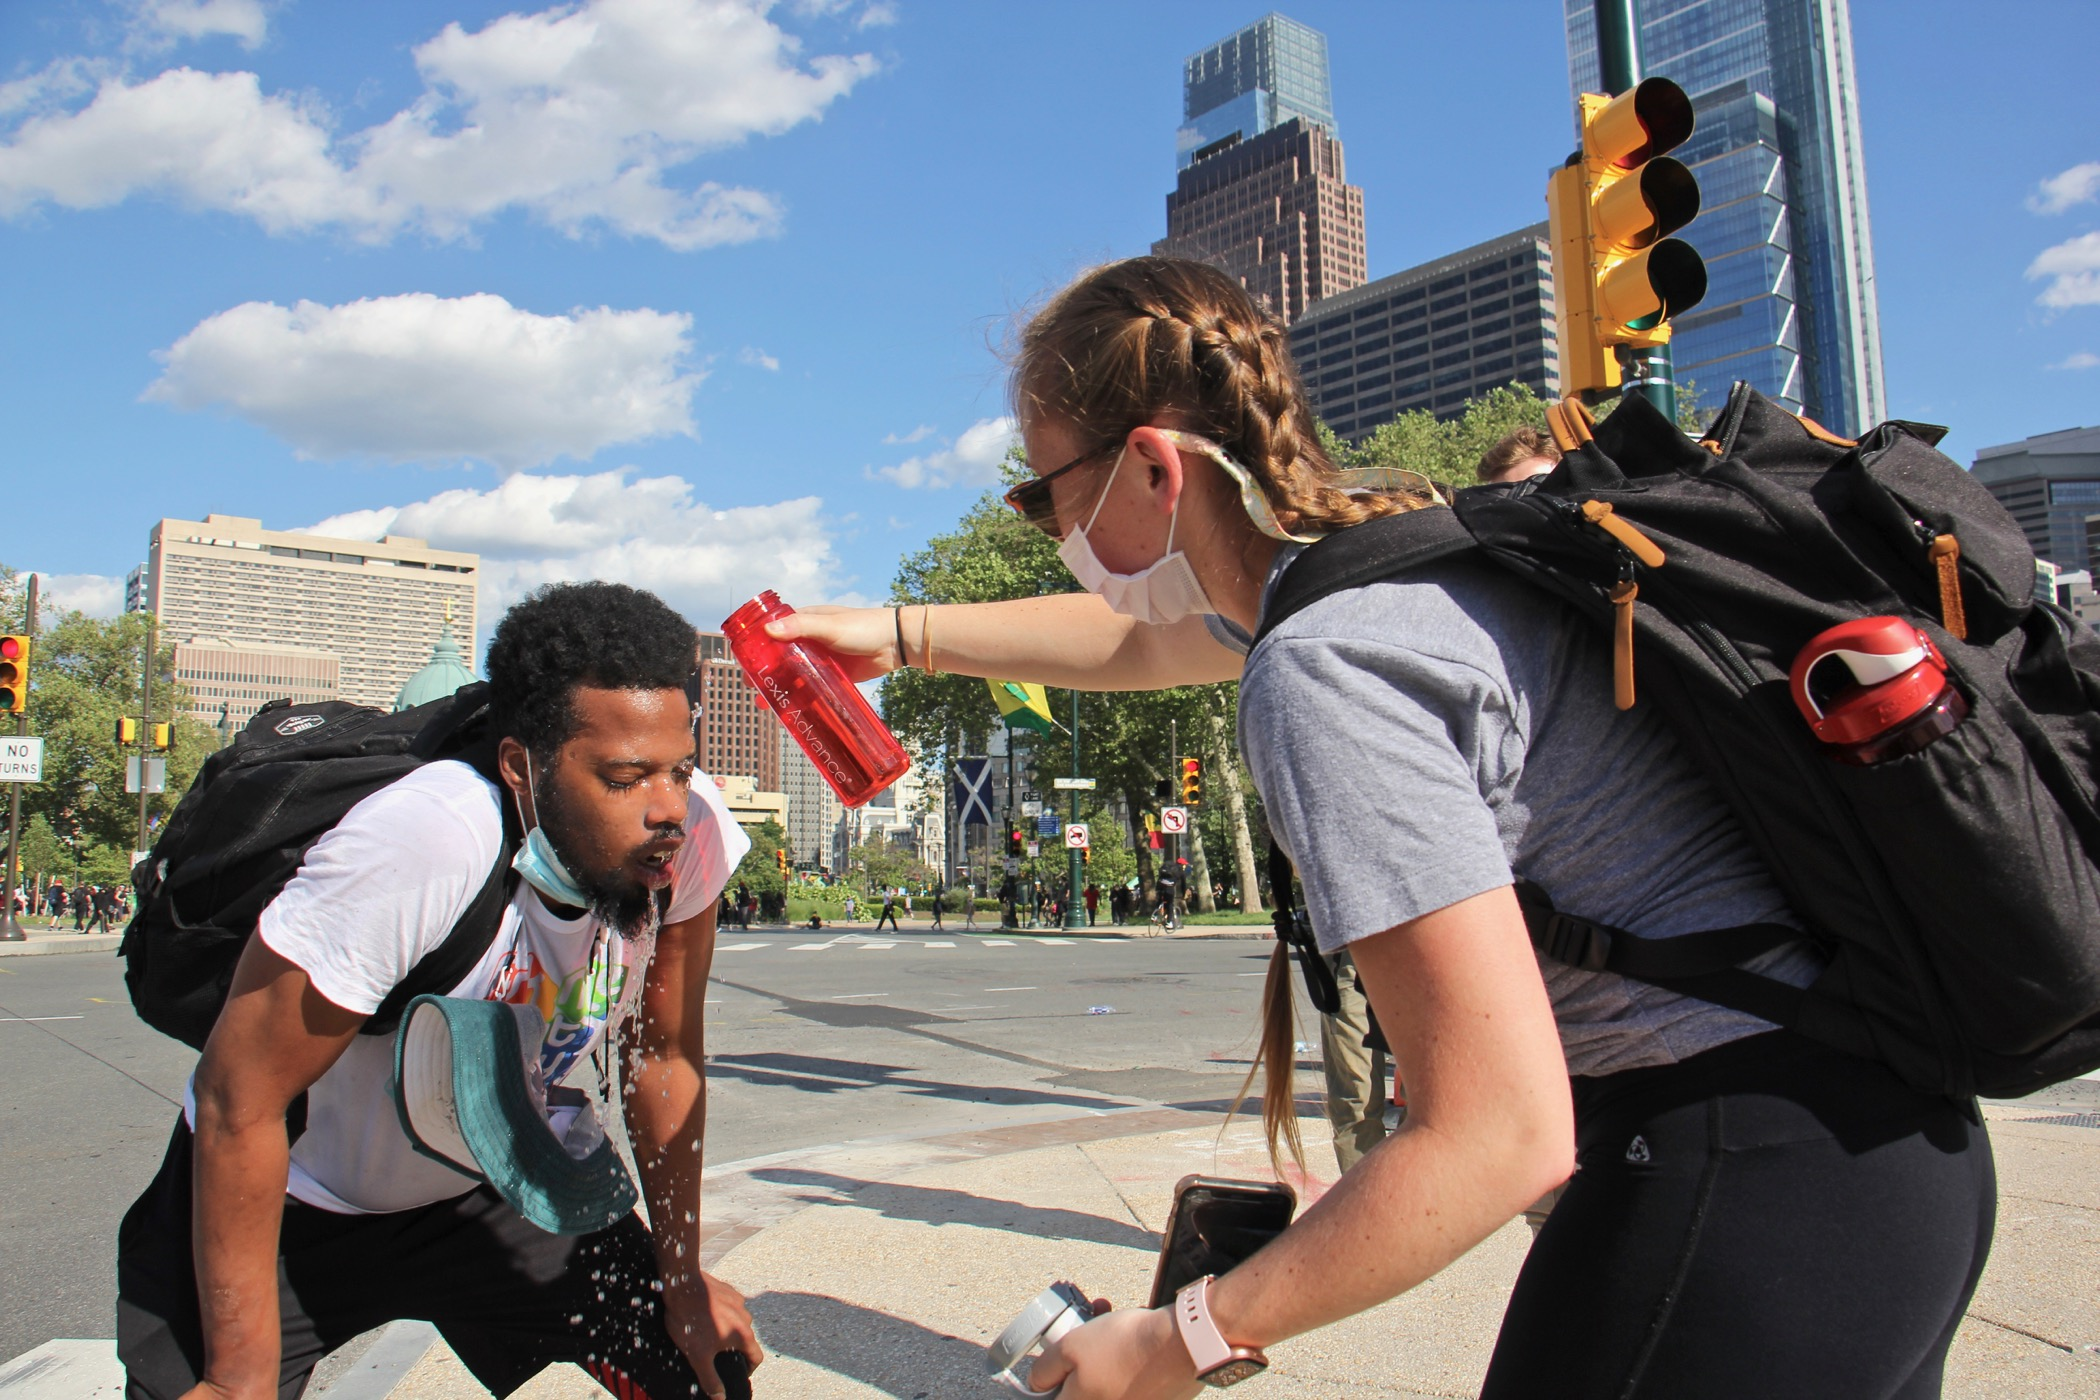 Protesters help each other after being tear-gassed